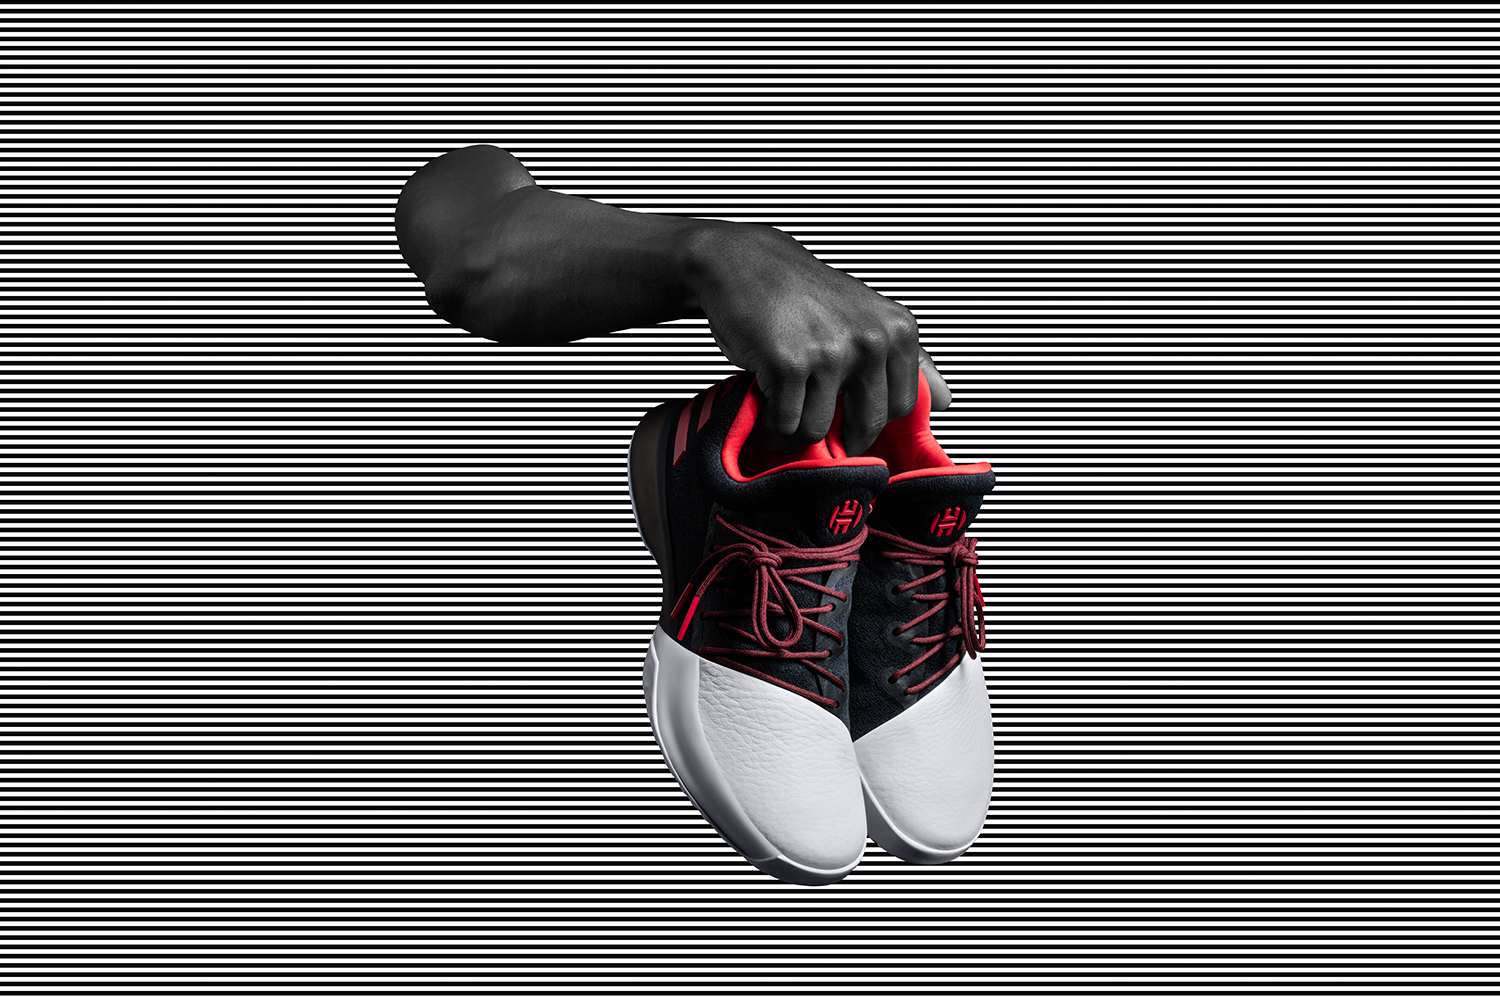 adidas Unveils James Harden Vol. 1 Signature Shoe